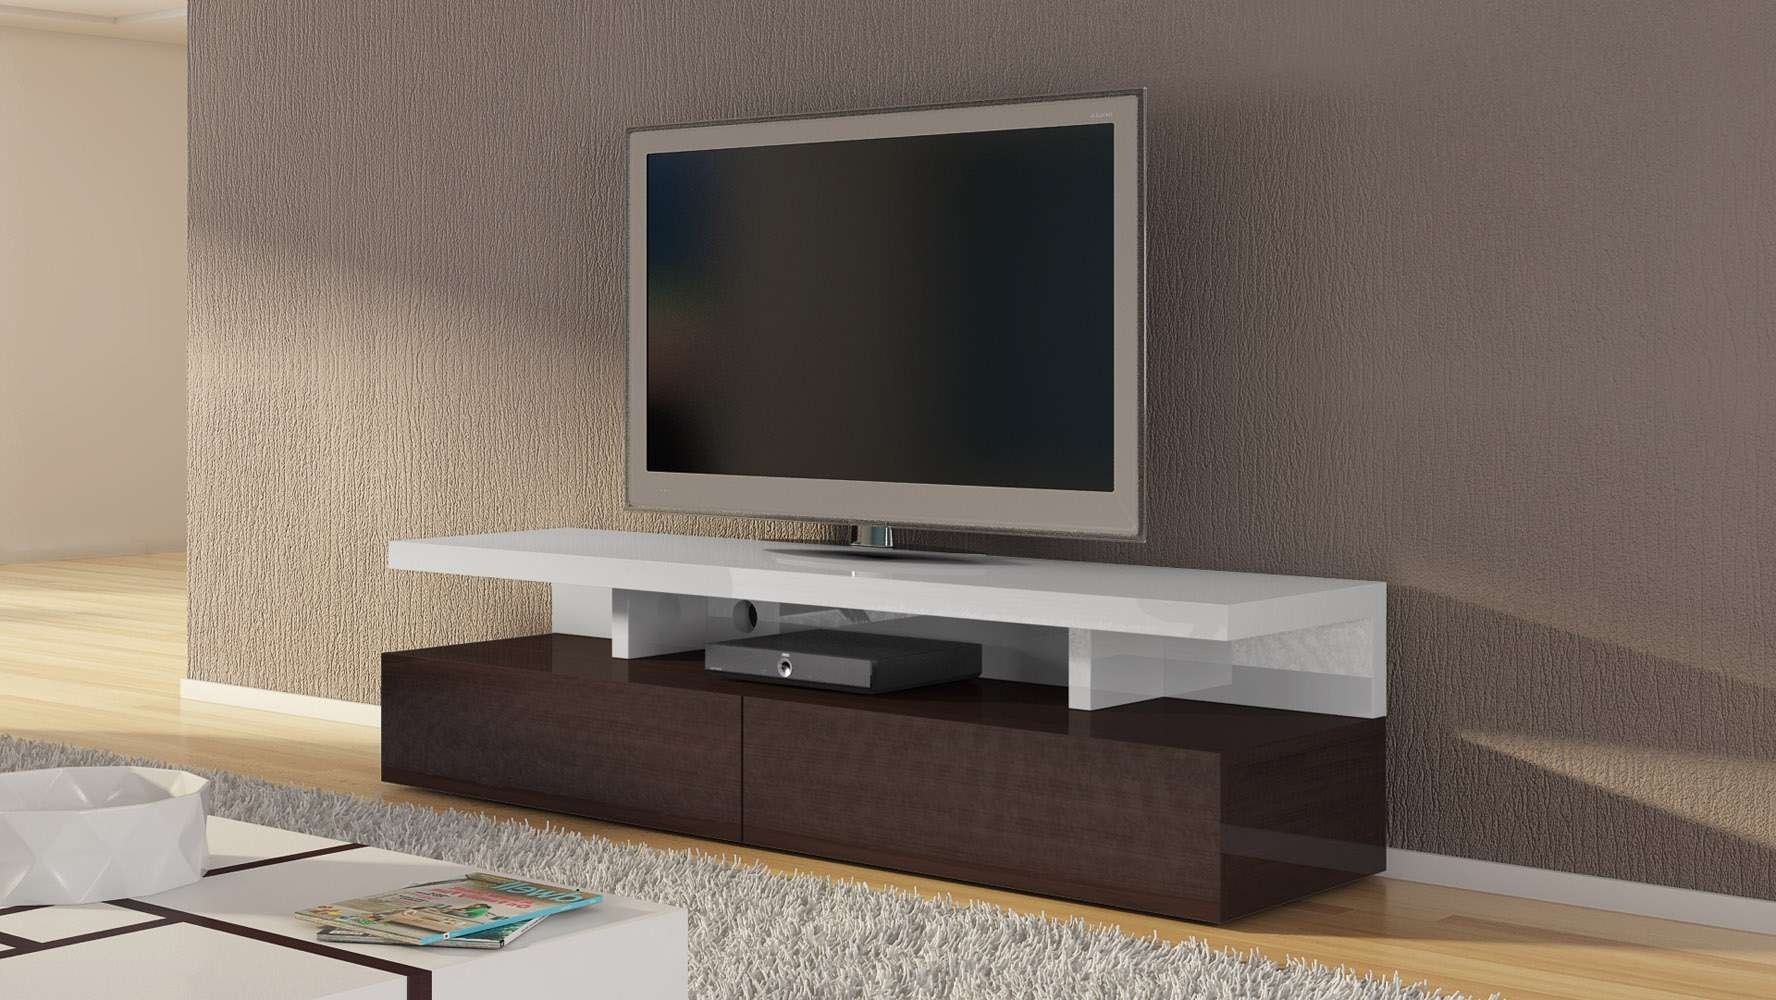 Dark Wood And White High Gloss Lacquer Mcintosh 71 Inch Tv Stand Inside High Gloss White Tv Stands (View 10 of 15)